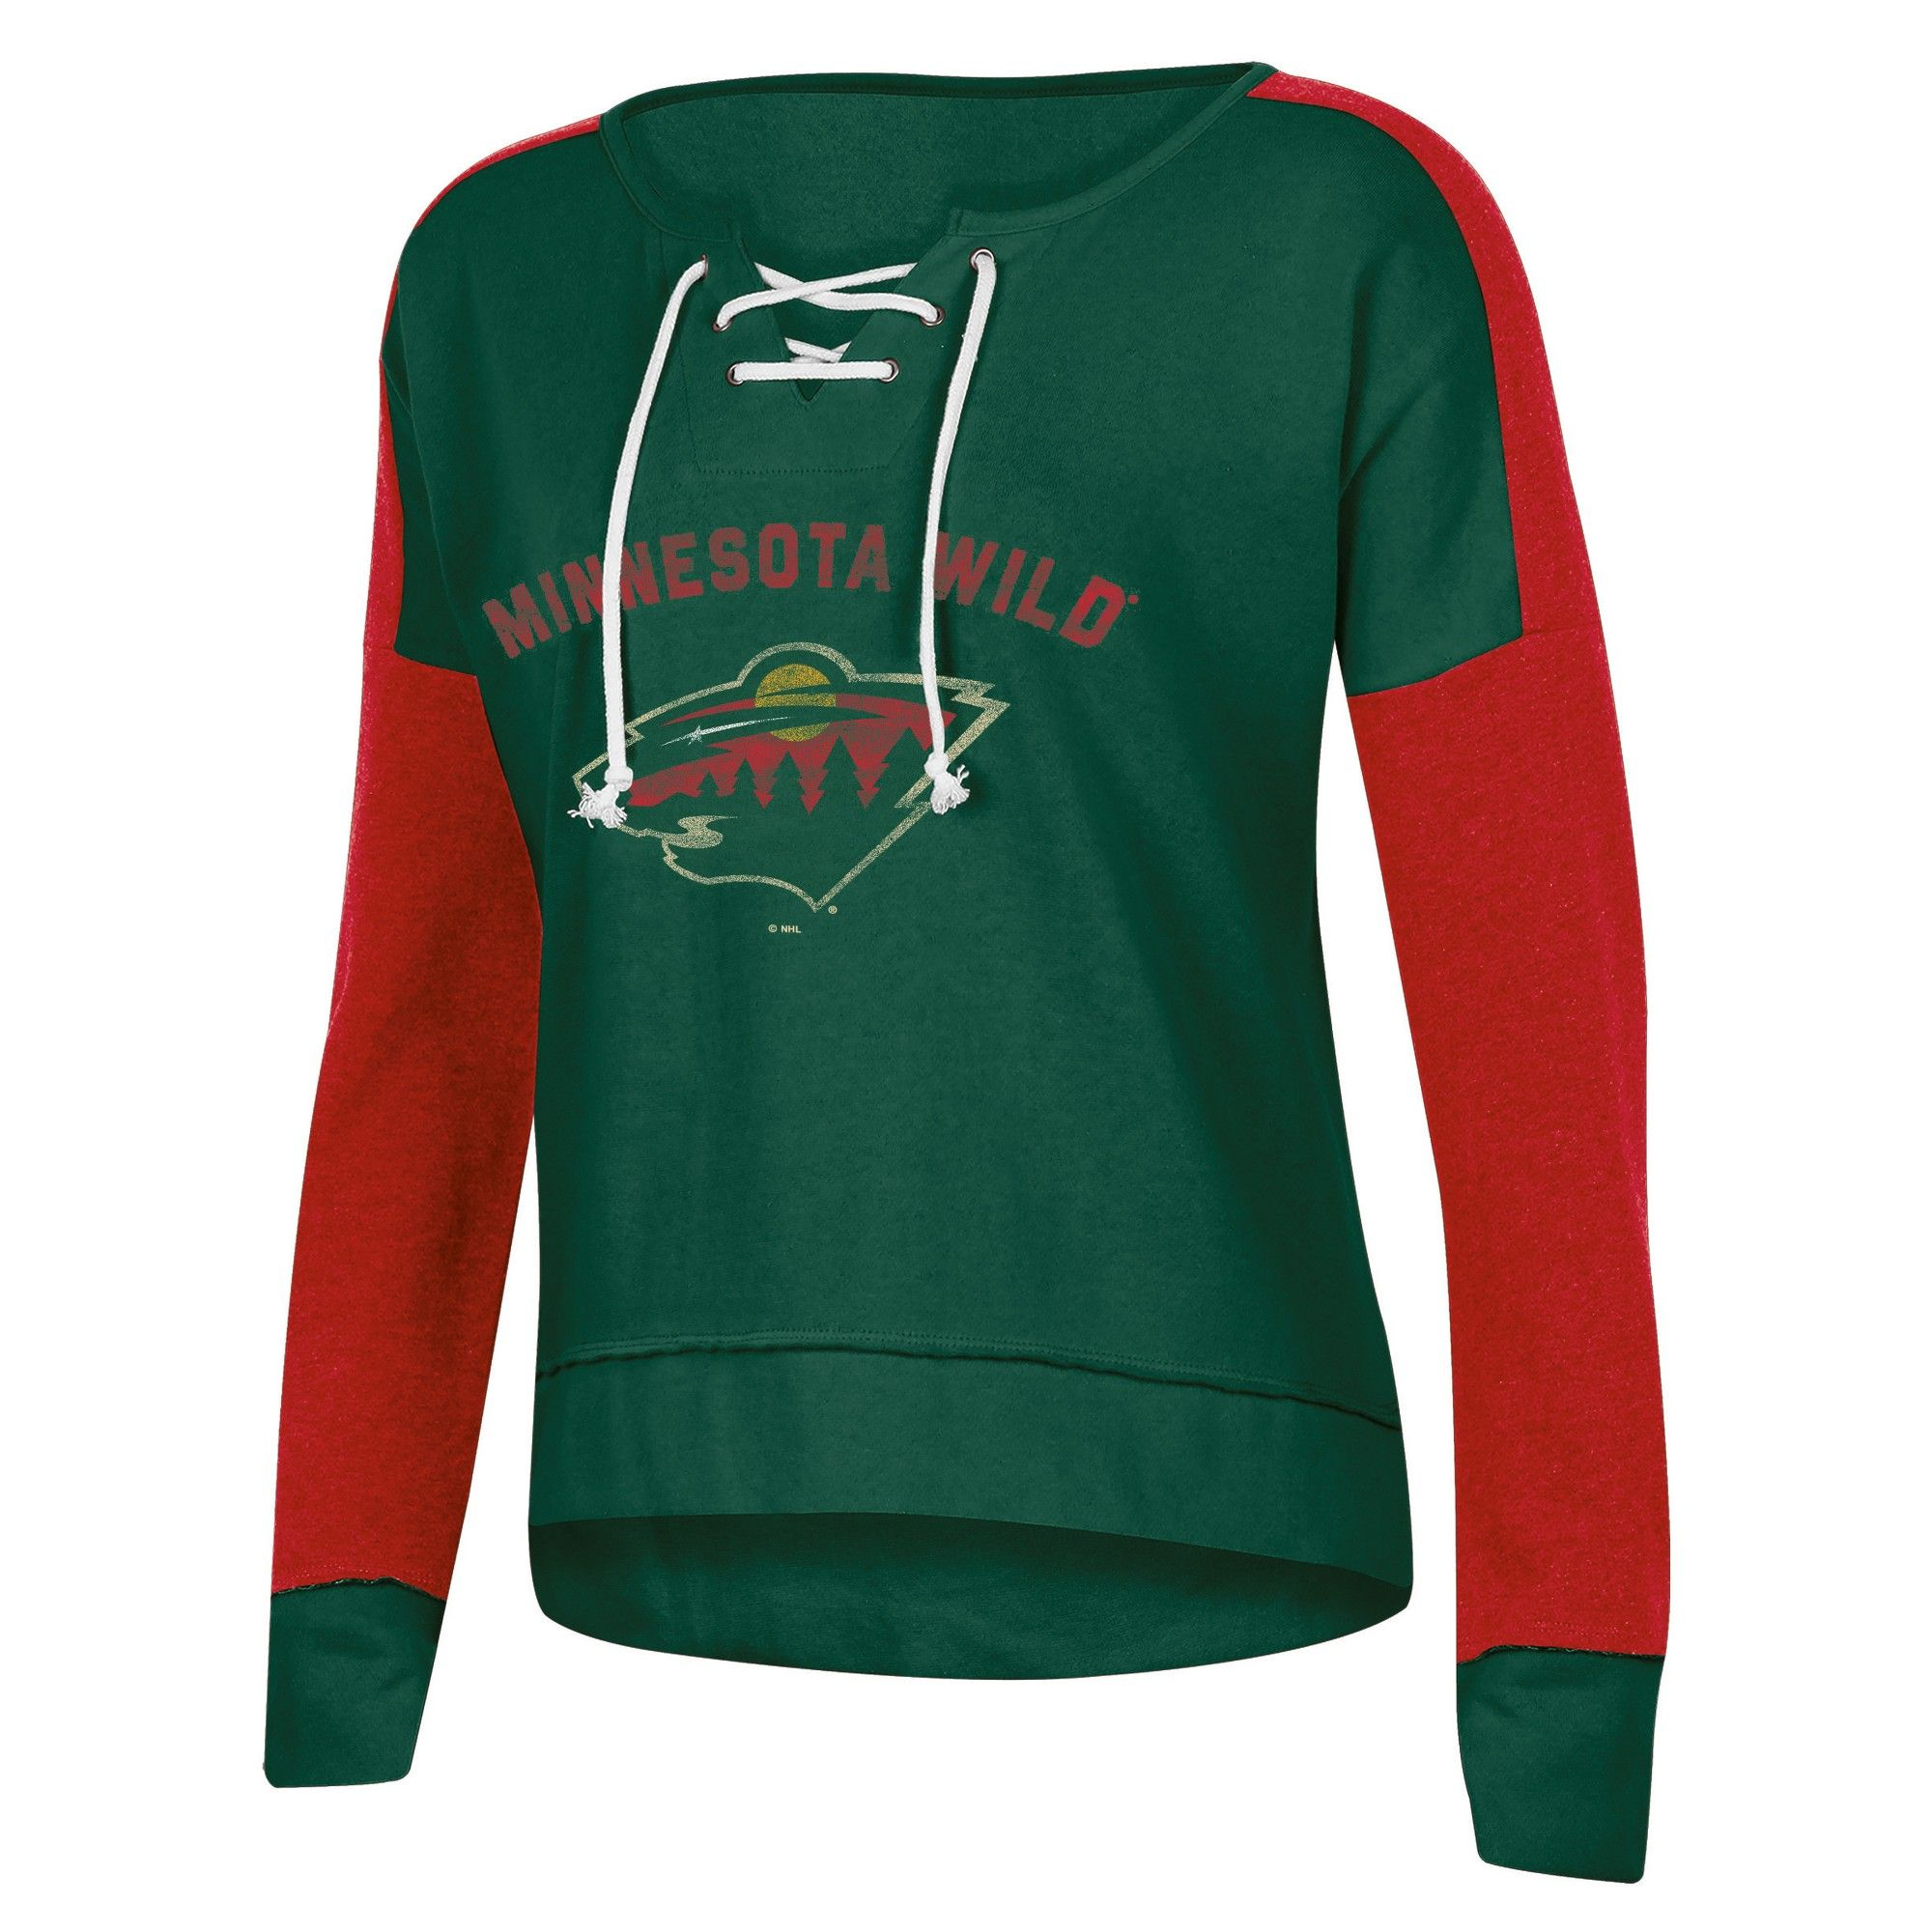 Minnesota Wild Women s Warming House Open Neck Fleece Sweatshirt XL ... 31b09c59e